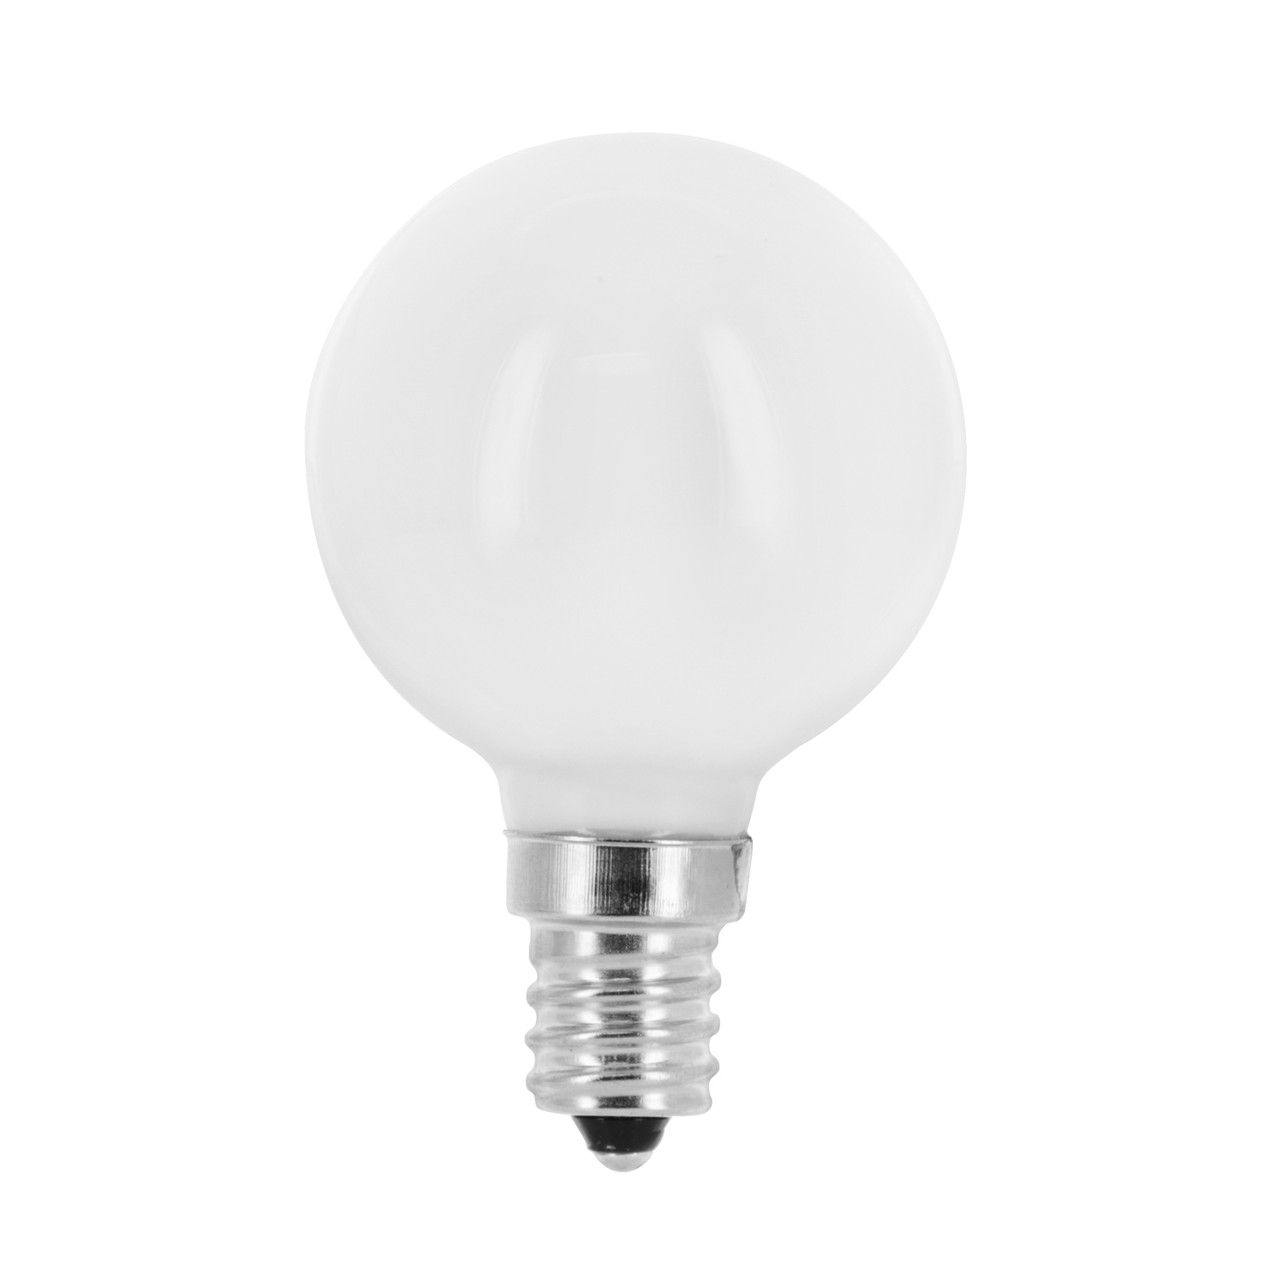 Replacement LED Bulb for Lumi Bloom Lamp